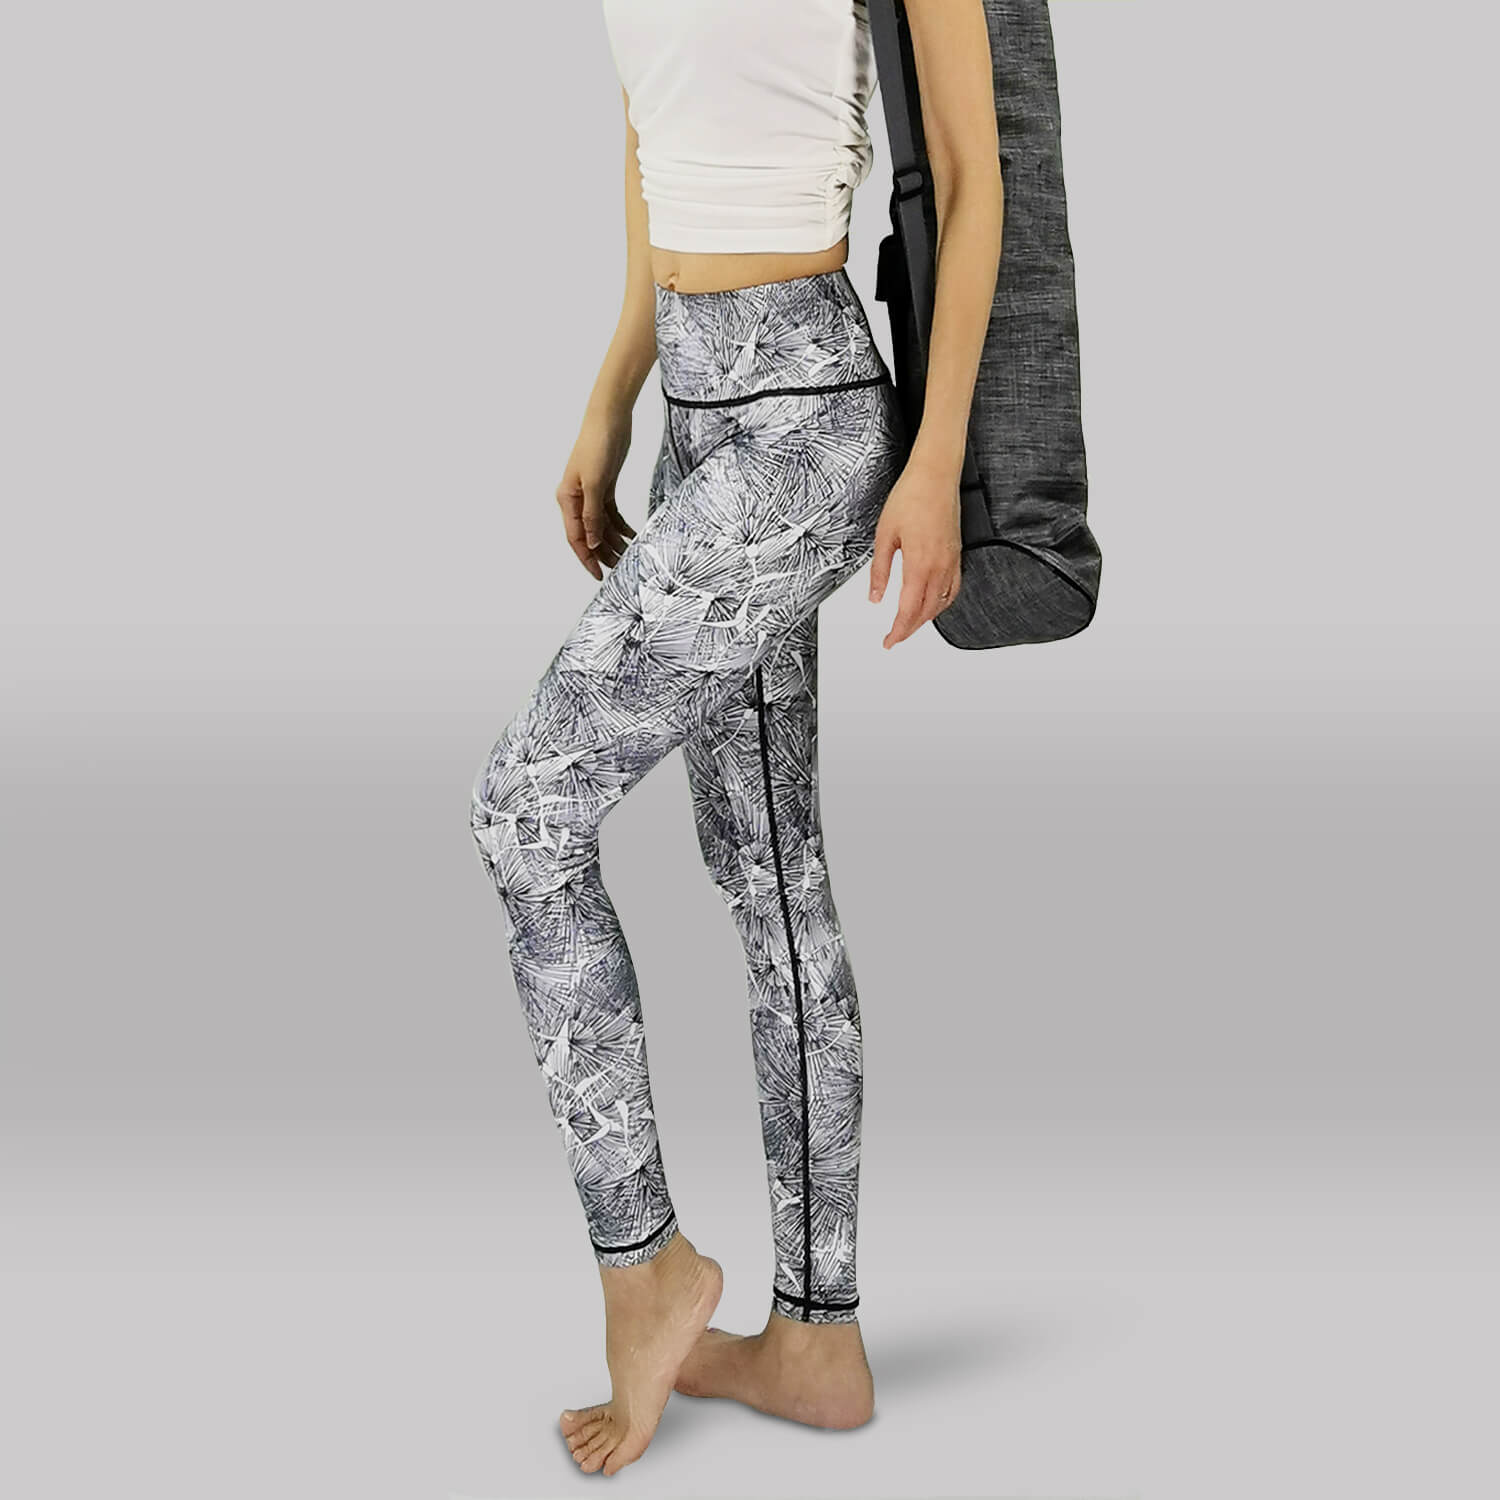 Yoga Legging- Basic Long Tights - Side View - White Color